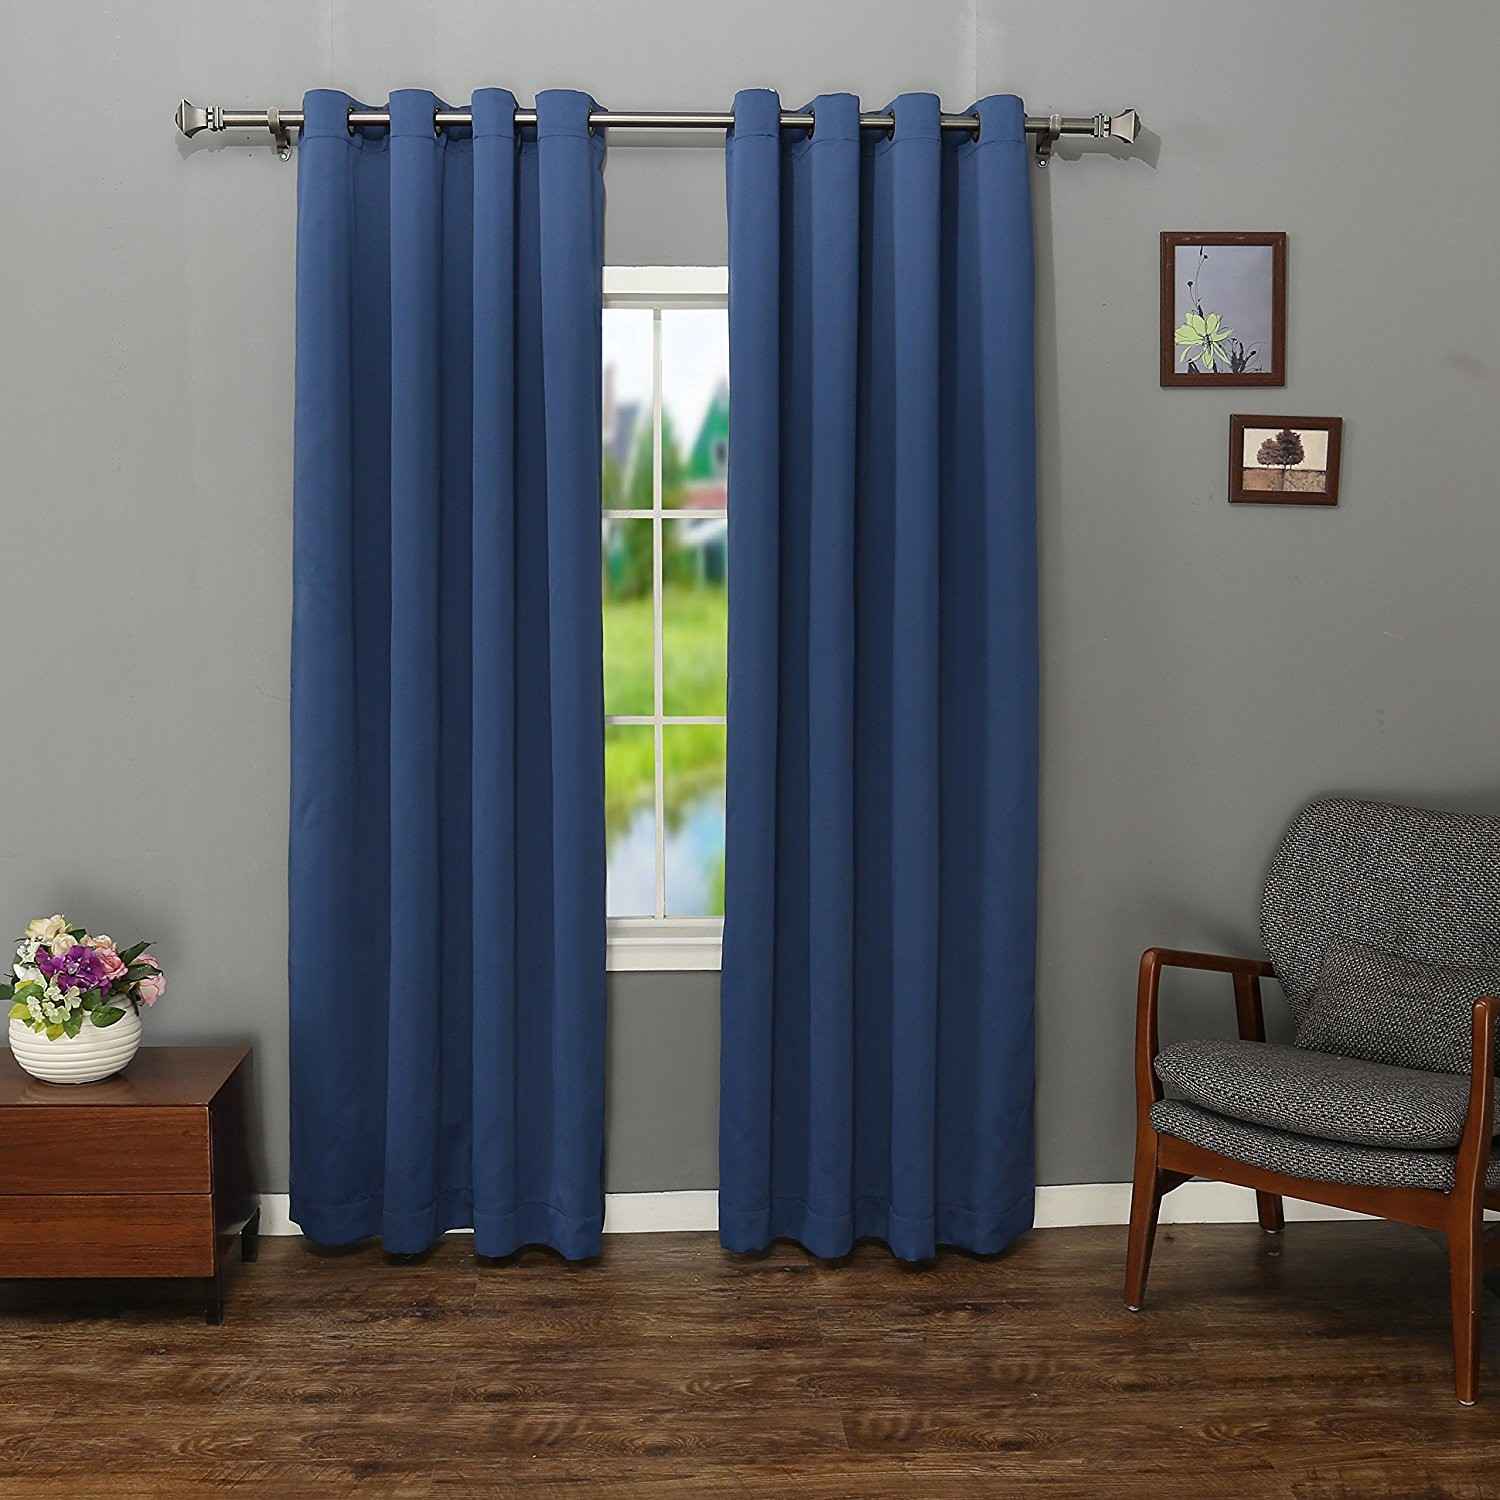 Thermal Insulated Curtains | Curtains Heat Insulation | Patterned Thermal Curtains